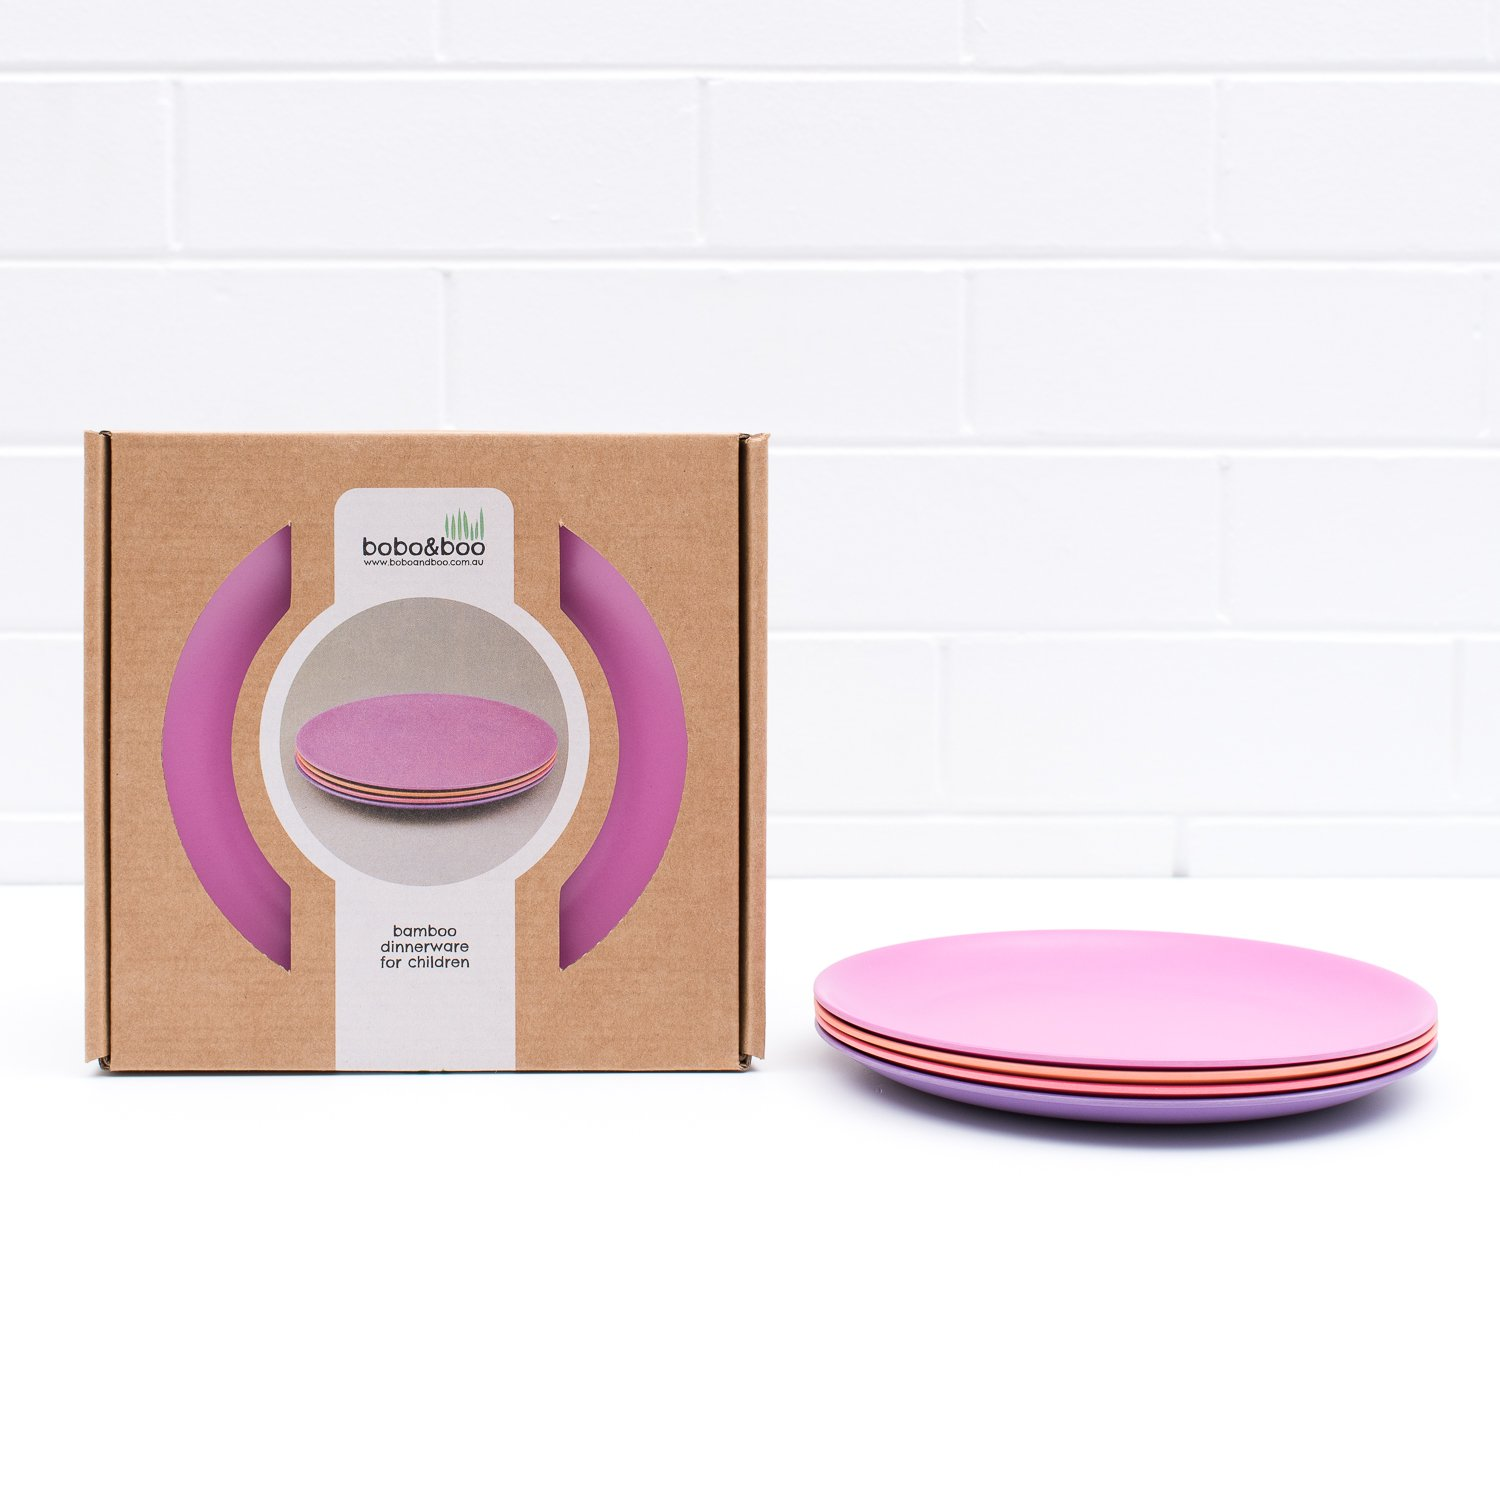 Bobo&Boo Bamboo Kids Plates, Set of 4 Eco Friendly Toddler Plates :: Non Toxic Children's Dinnerware for Babies & Big Kids :: Mix and Match :: Great Gift for Baby Showers & Birthdays, Sunset BoBo and Boo